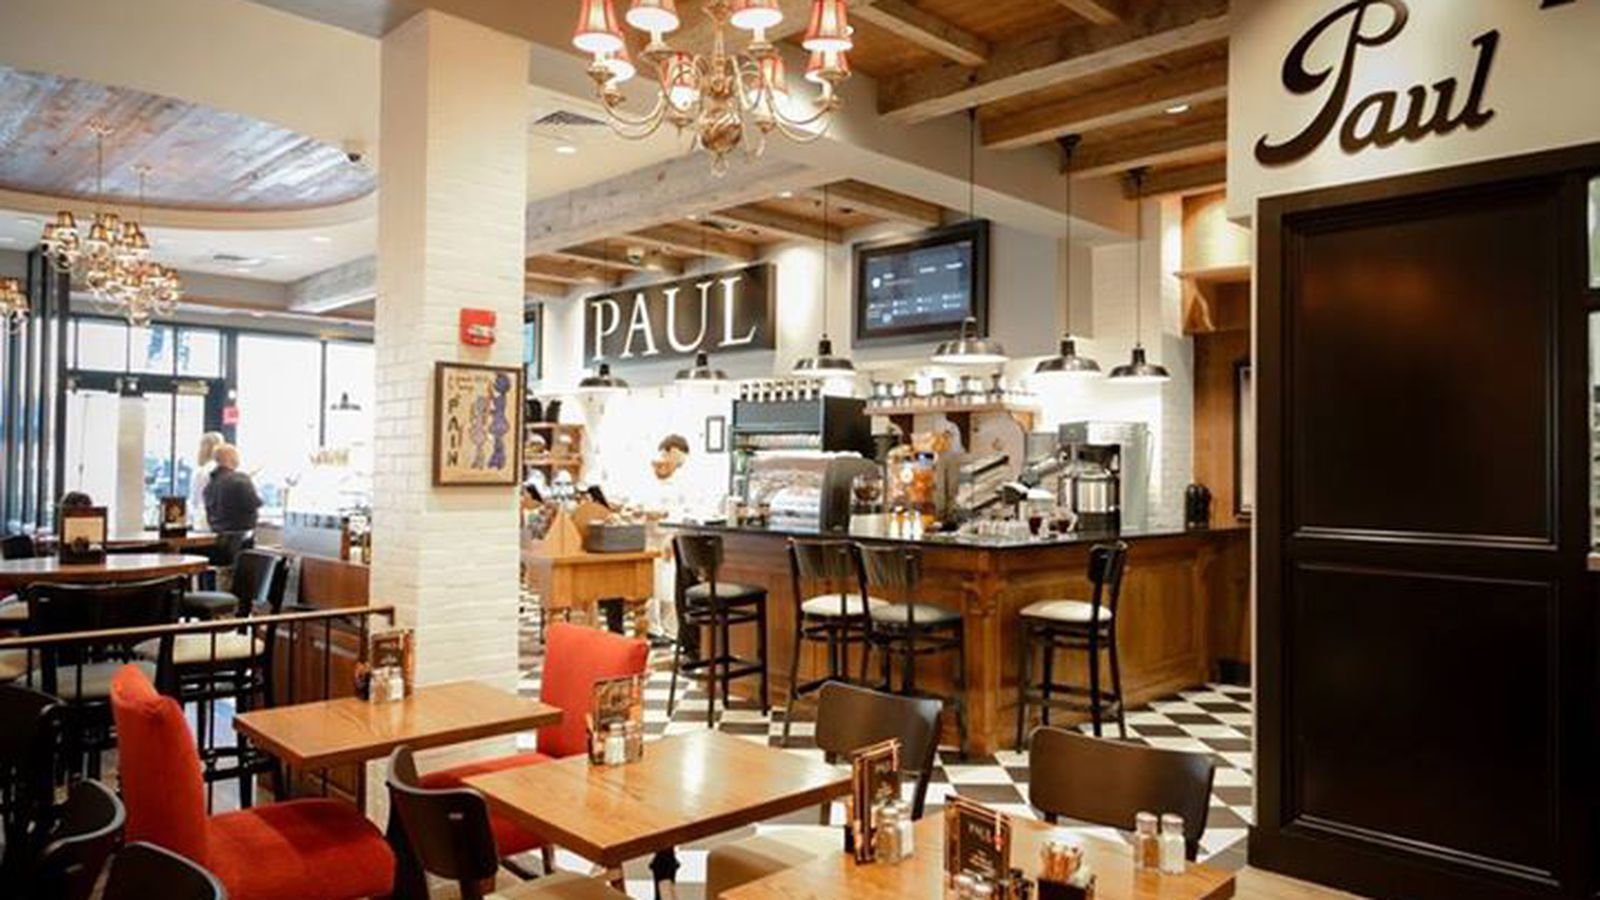 Craigslist Twin Cities >> Flagship PAUL Bakery Hiring For 'Early Spring' Opening ...